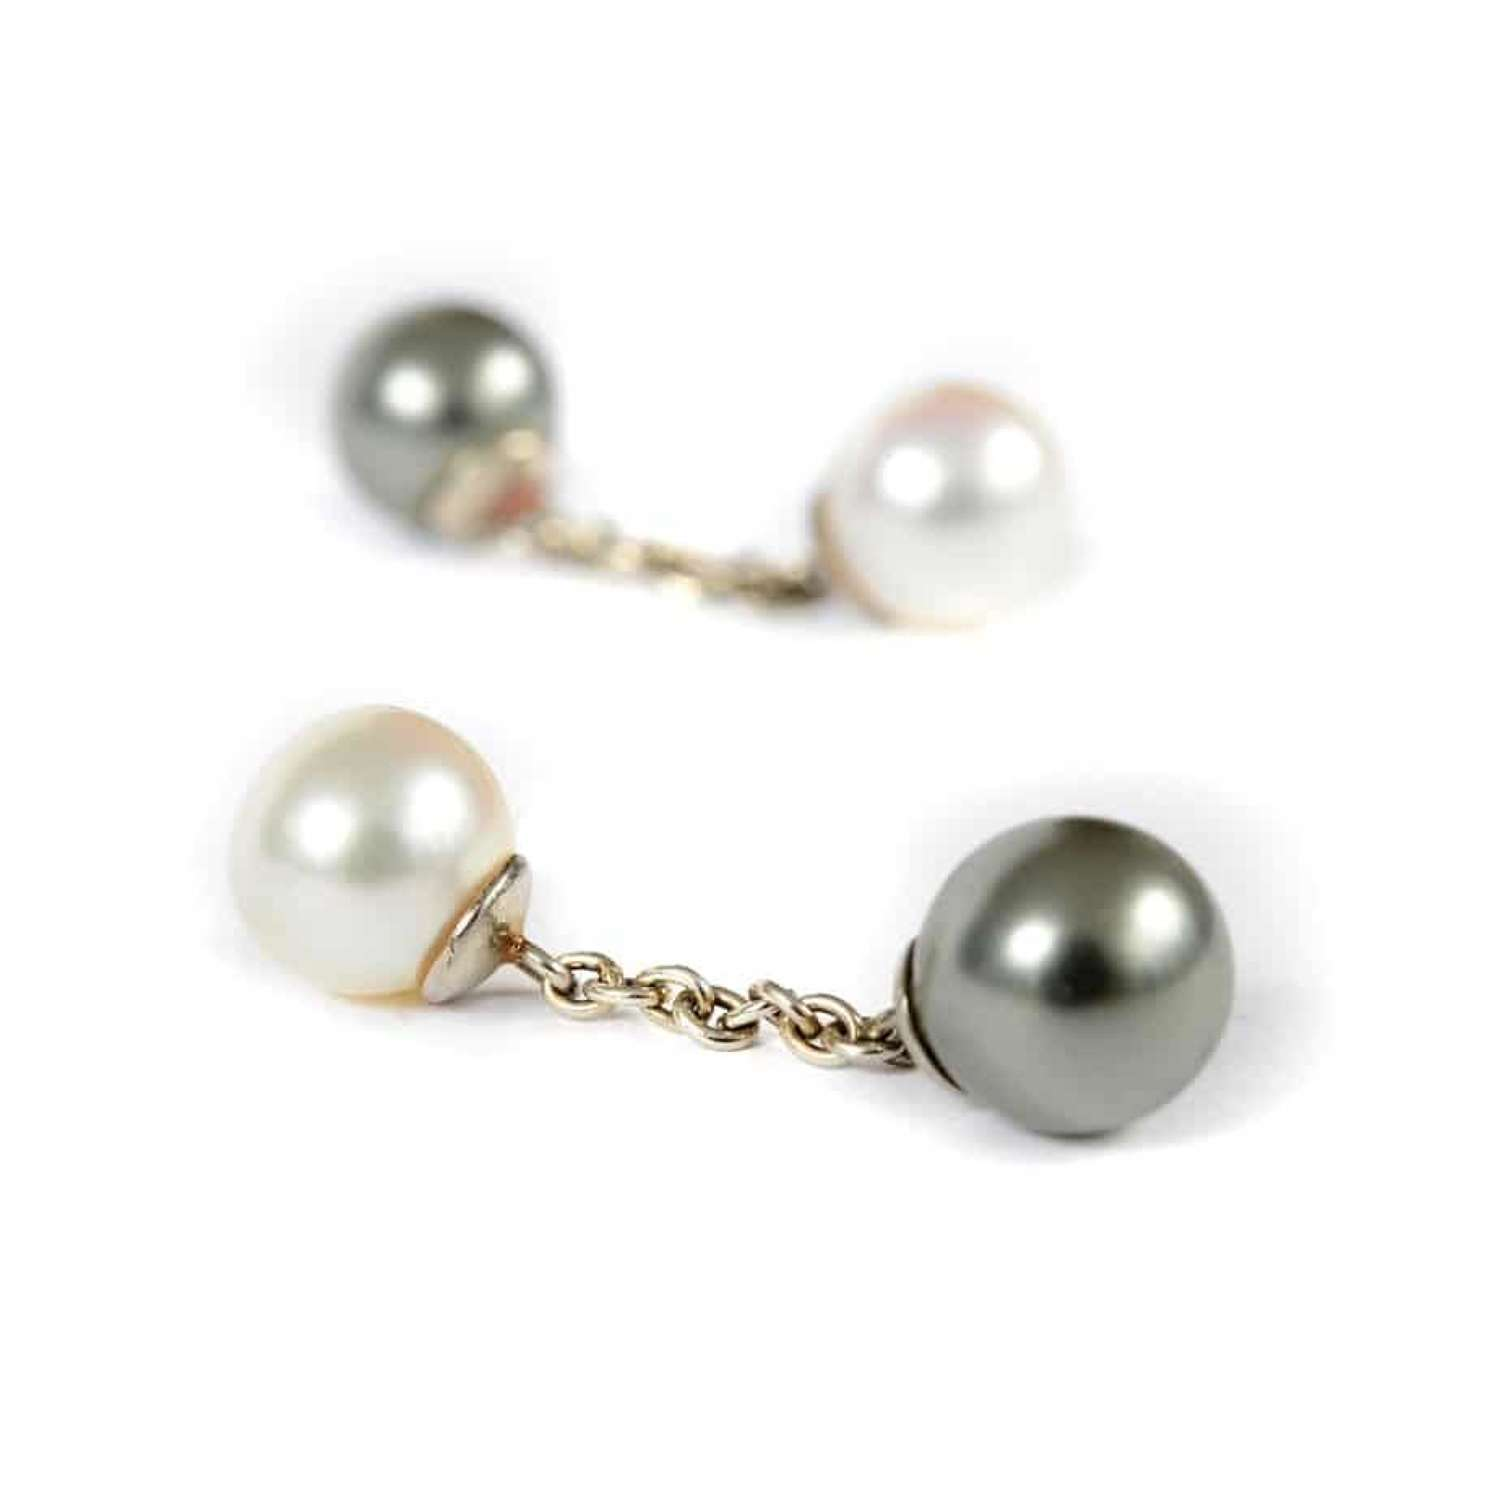 Pair of white and grey cultured pearl cufflinks - retailed by Garrard